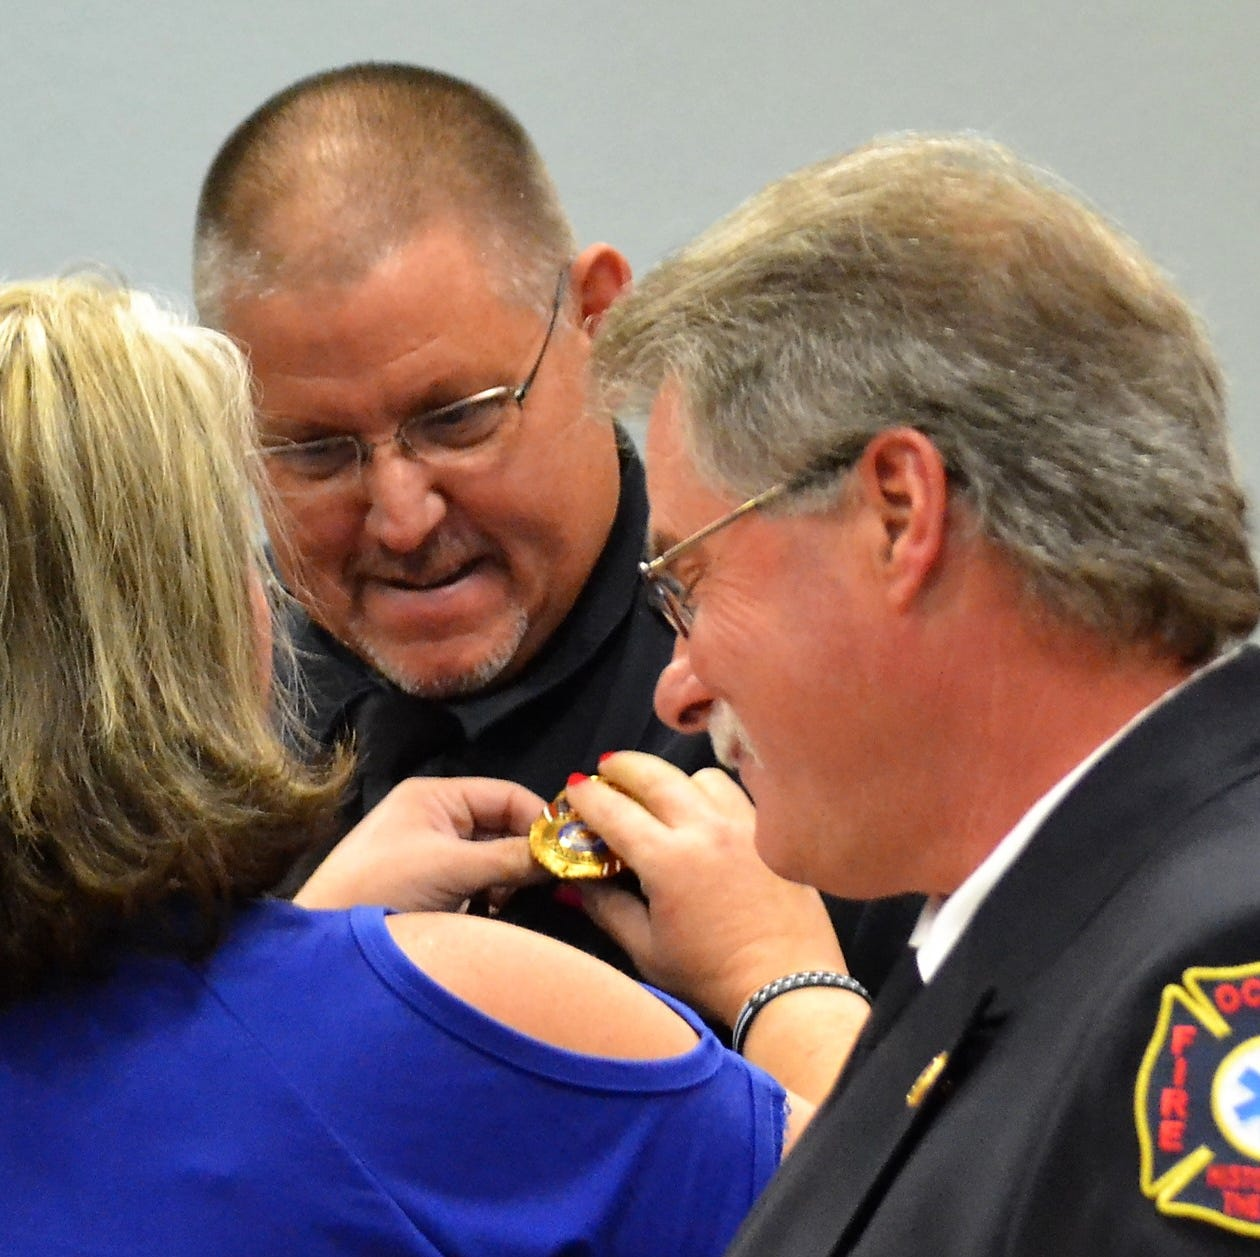 Pinning ceremony a final welcome for new Oconto Police chief